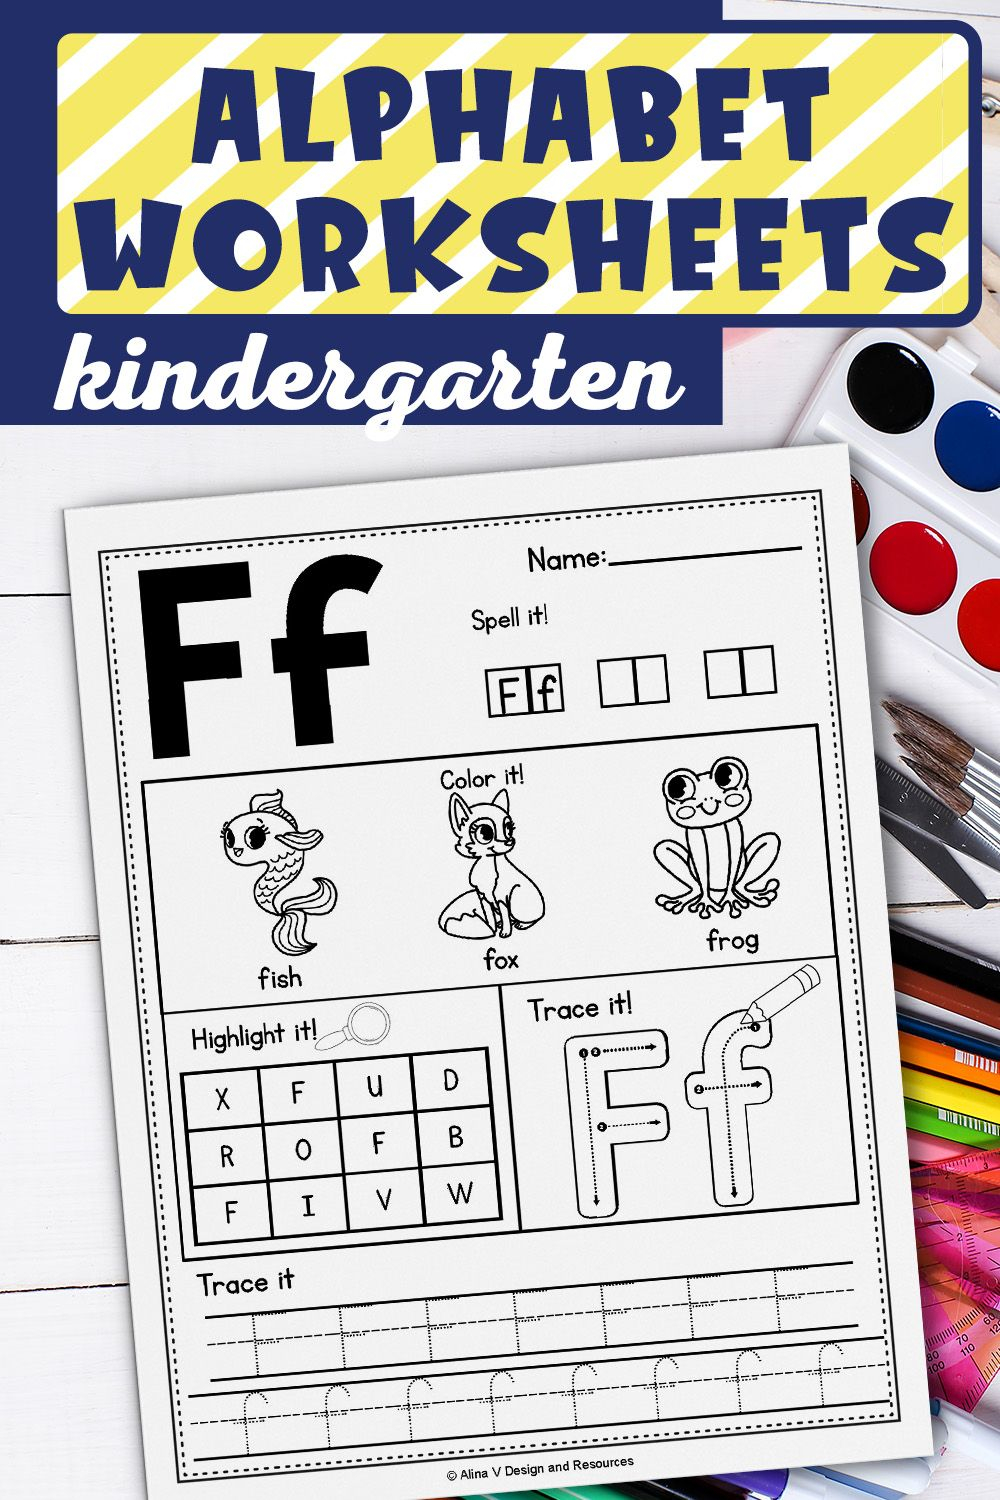 Alphabet Worksheets A-Z, Alphabet Tracing, Letter in Letter Tracing Resources